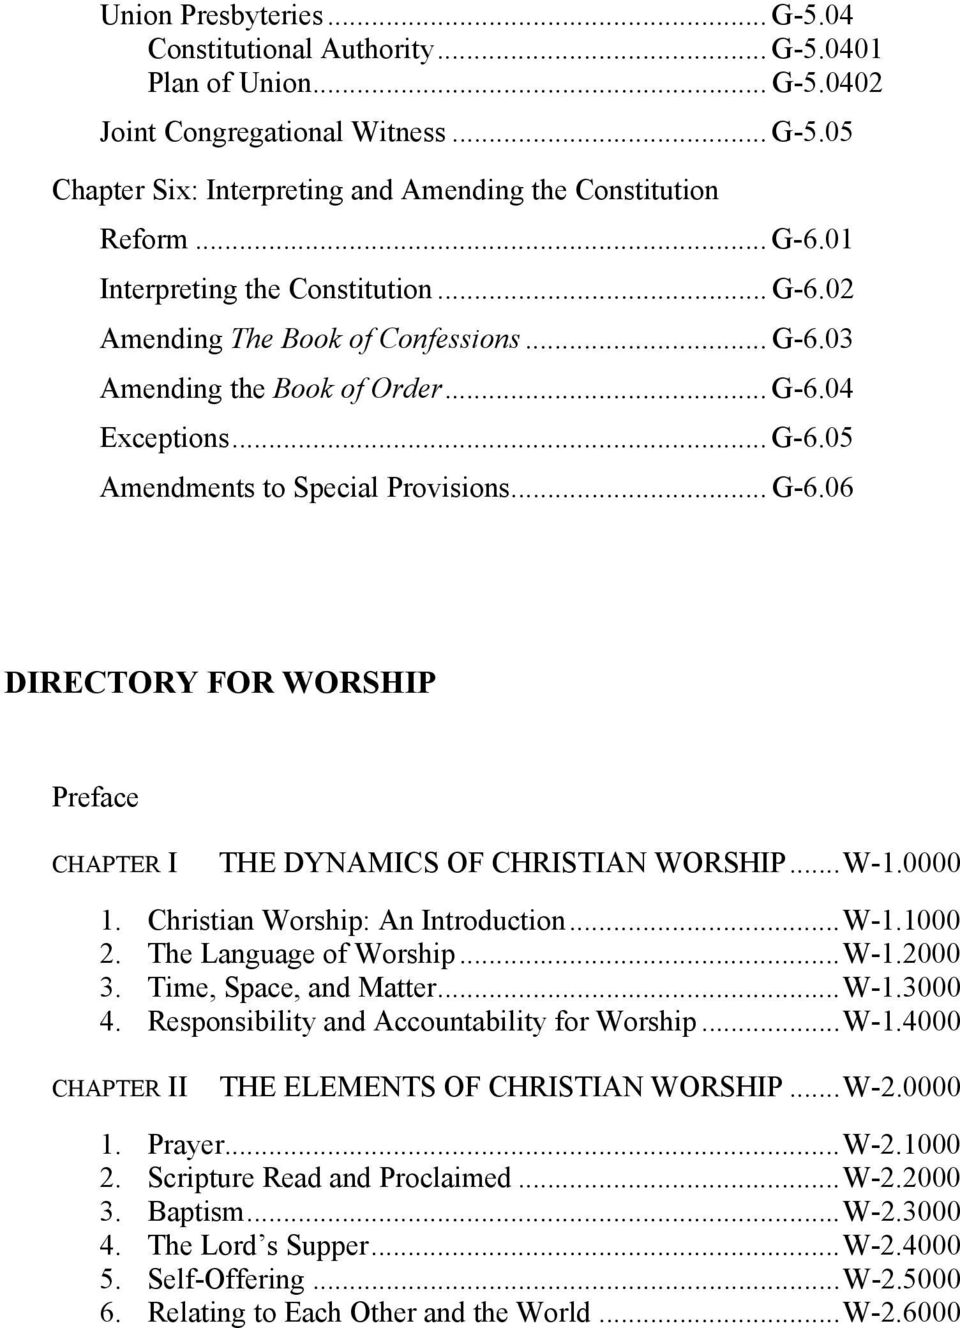 .. W-1.0000 1. Christian Worship: An Introduction... W-1.1000 2. The Language of Worship... W-1.2000 3. Time, Space, and Matter... W-1.3000 4. Responsibility and Accountability for Worship... W-1.4000 CHAPTER II THE ELEMENTS OF CHRISTIAN WORSHIP.